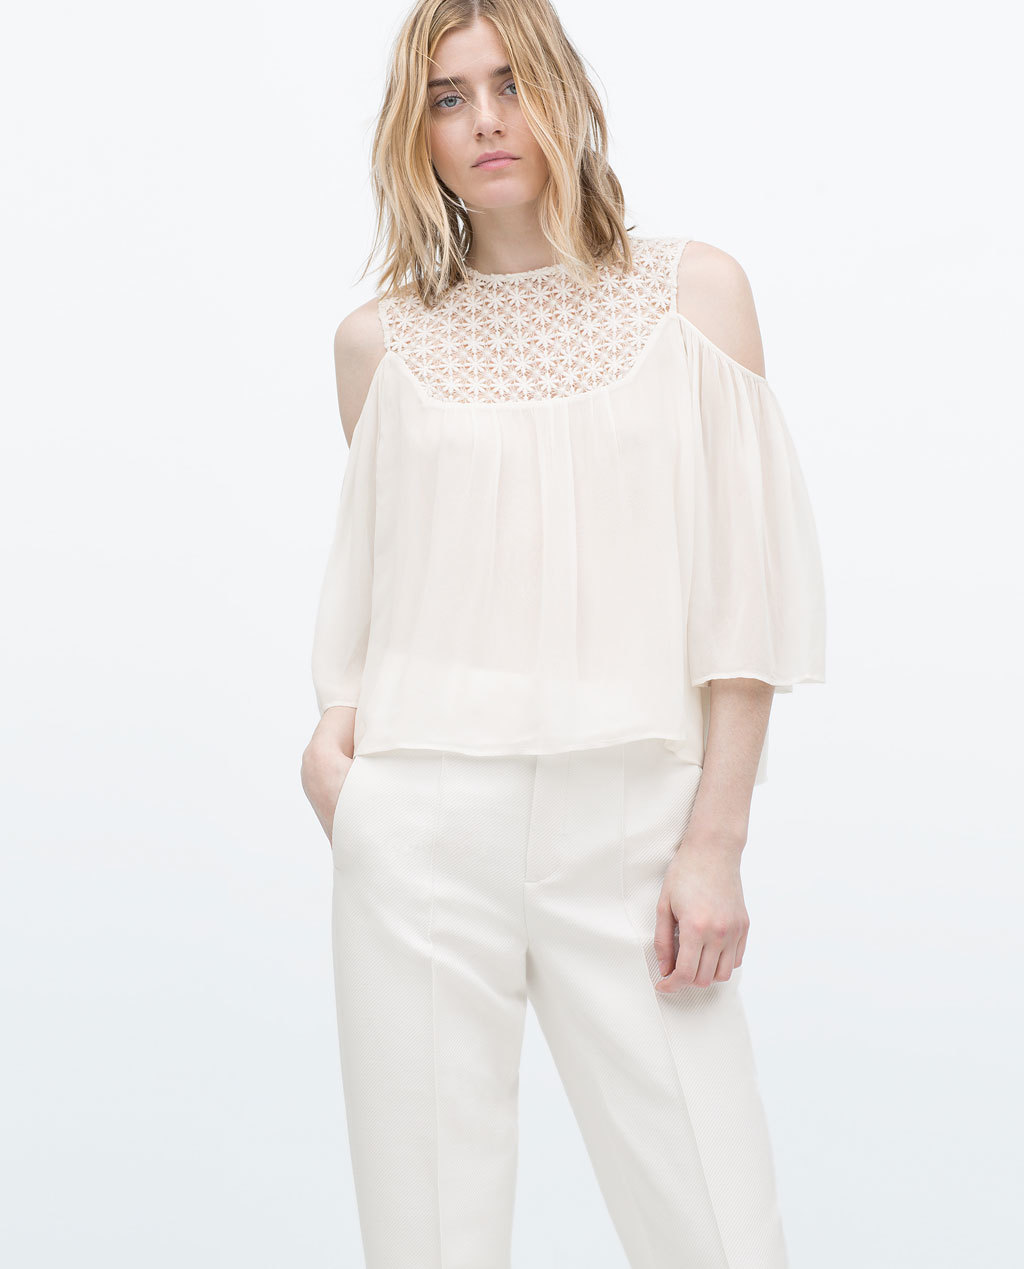 Guipure Lace Off Shoulder Blouse - sleeve style: angel/waterfall; pattern: plain; style: blouse; predominant colour: ivory/cream; occasions: casual, evening, occasion, creative work; length: standard; fibres: viscose/rayon - 100%; fit: straight cut; neckline: crew; shoulder detail: cut out shoulder; sleeve length: 3/4 length; texture group: sheer fabrics/chiffon/organza etc.; pattern type: fabric; season: s/s 2015; wardrobe: highlight